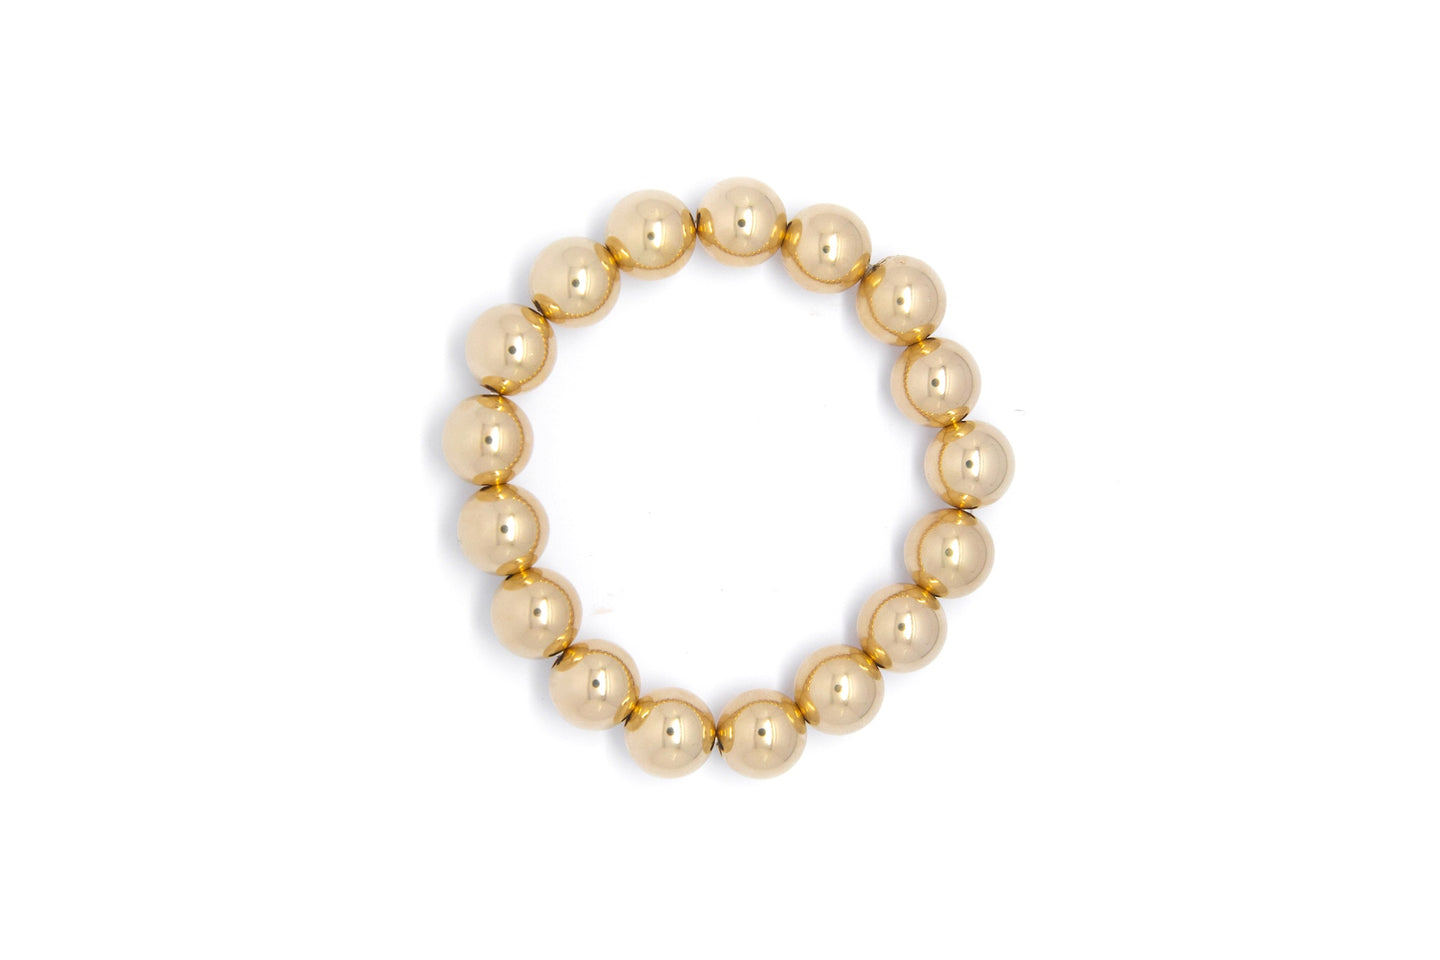 Gold Smooth Round Beaded Bracelet With Extra Large Beads